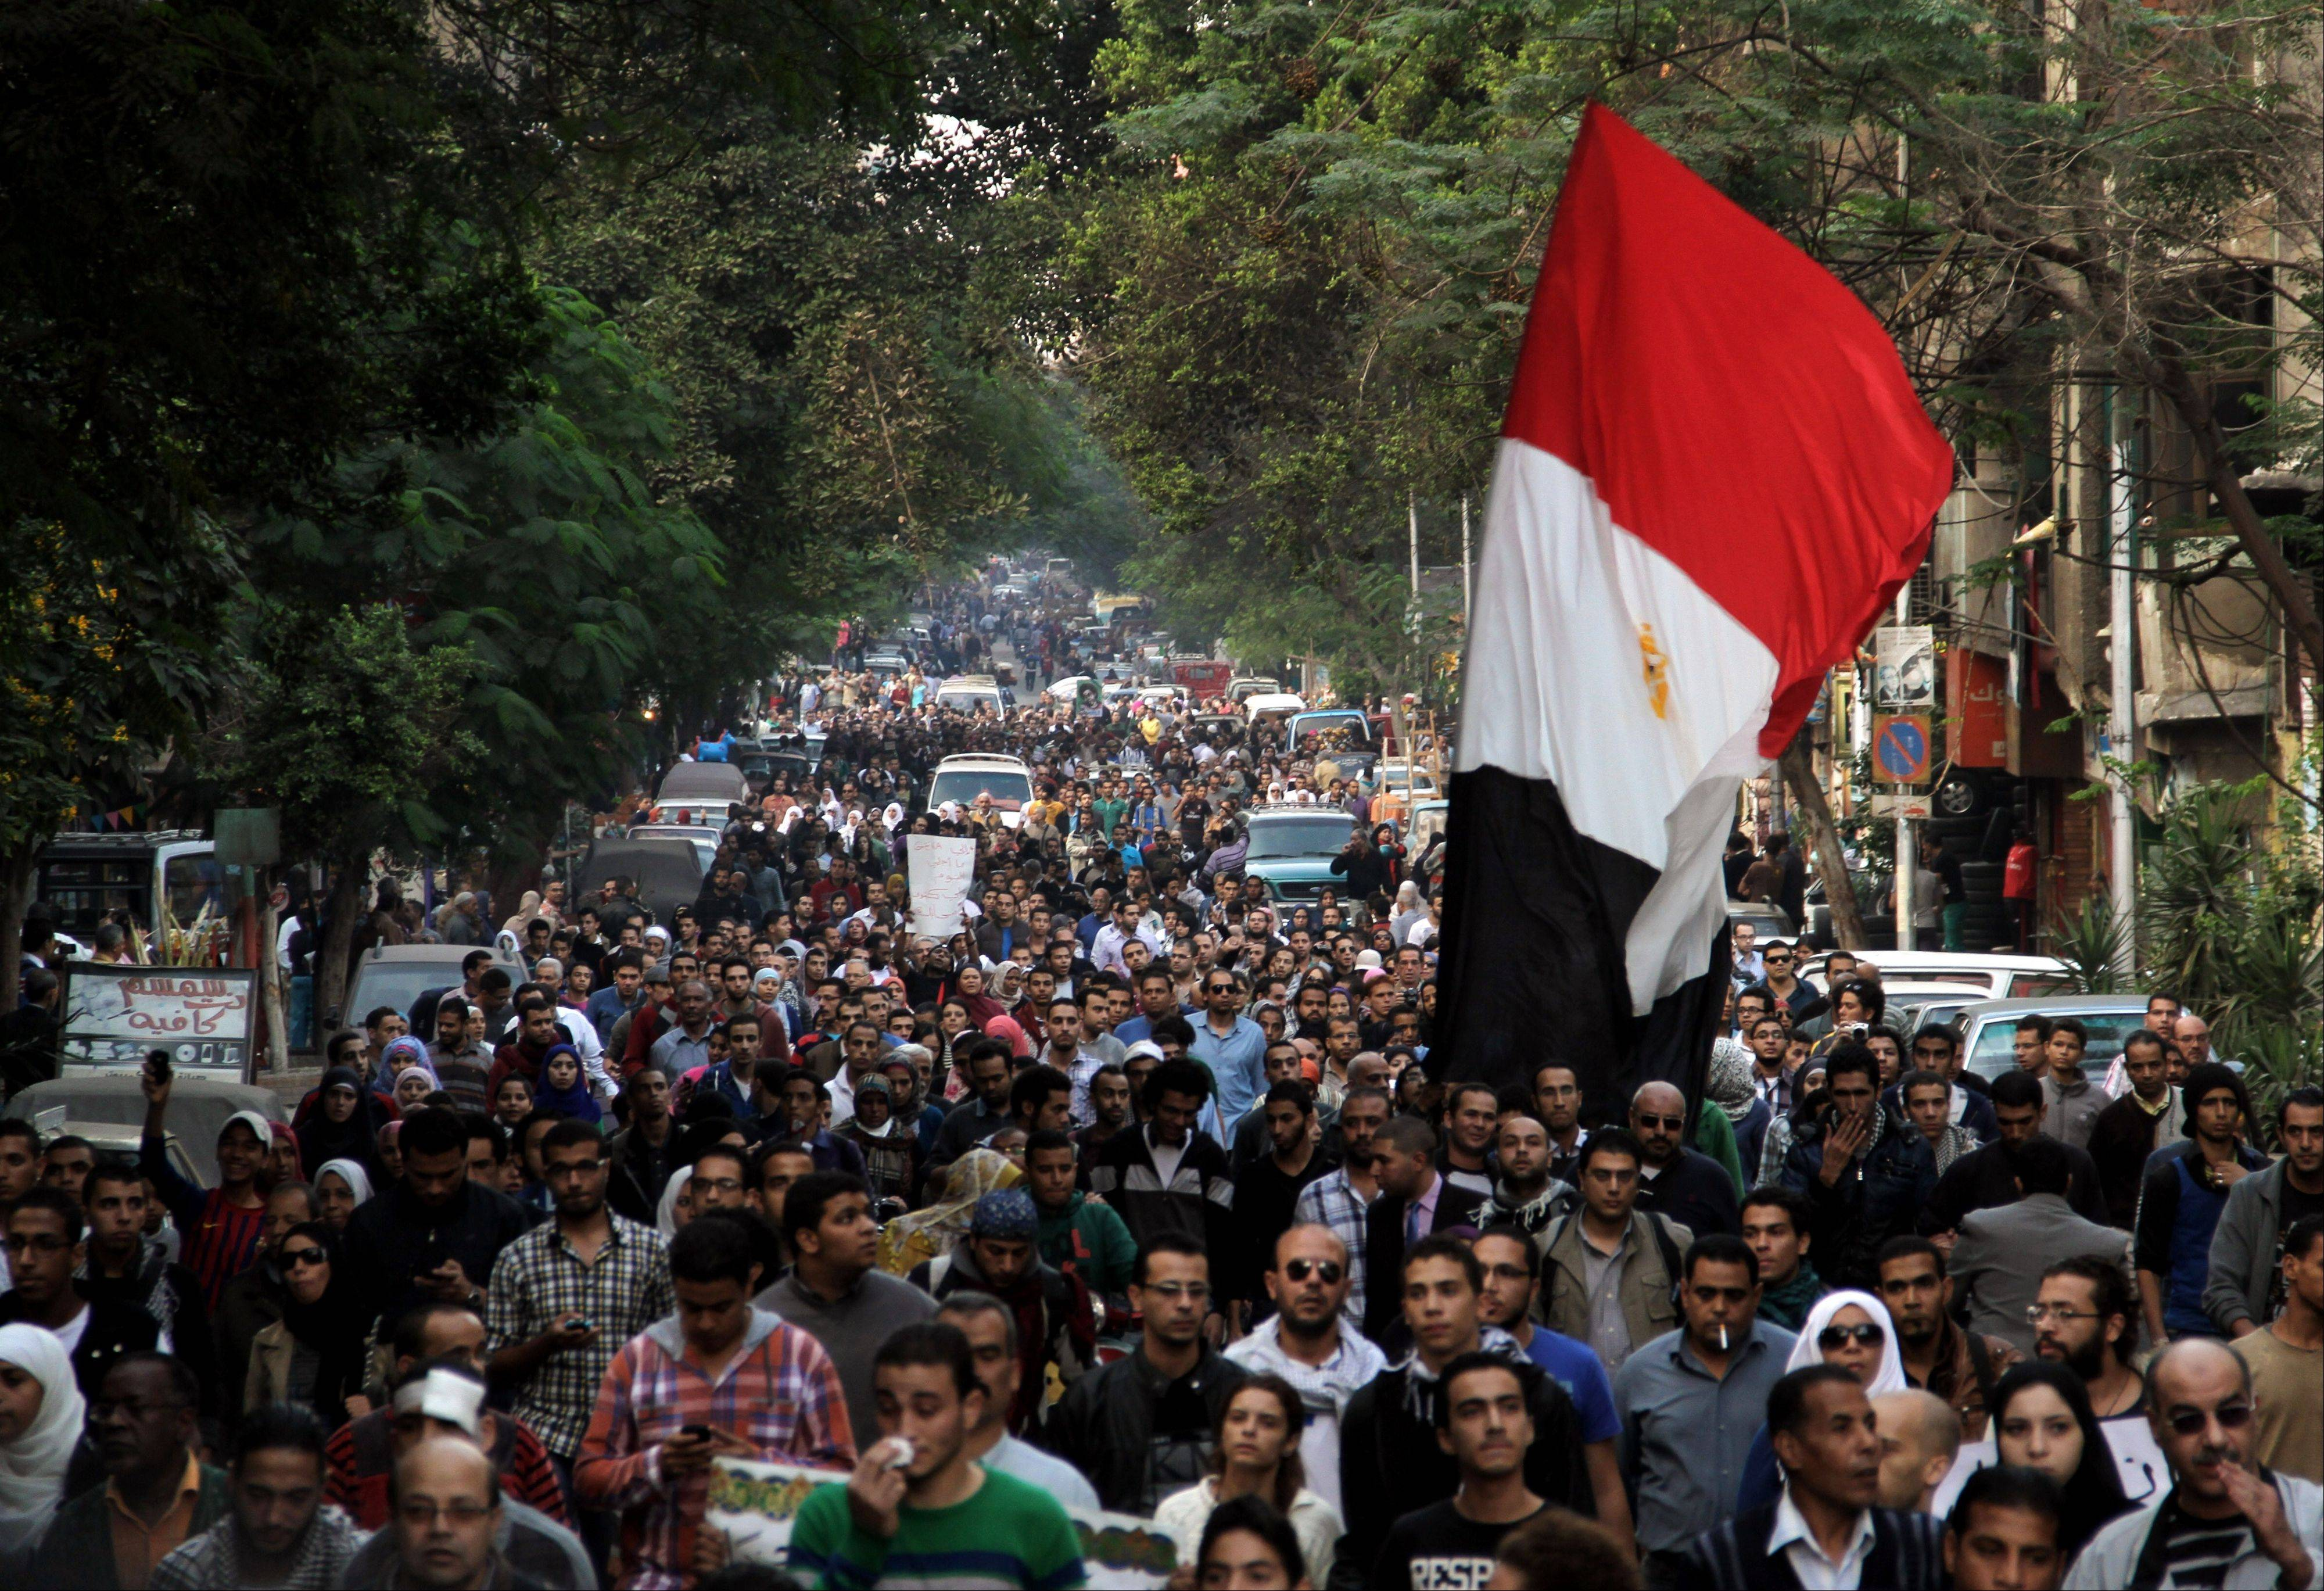 Thousands of Egyptians attend the funeral of Gaber Salah, who was who was killed in clashes with security forces in Cairo, Monday.